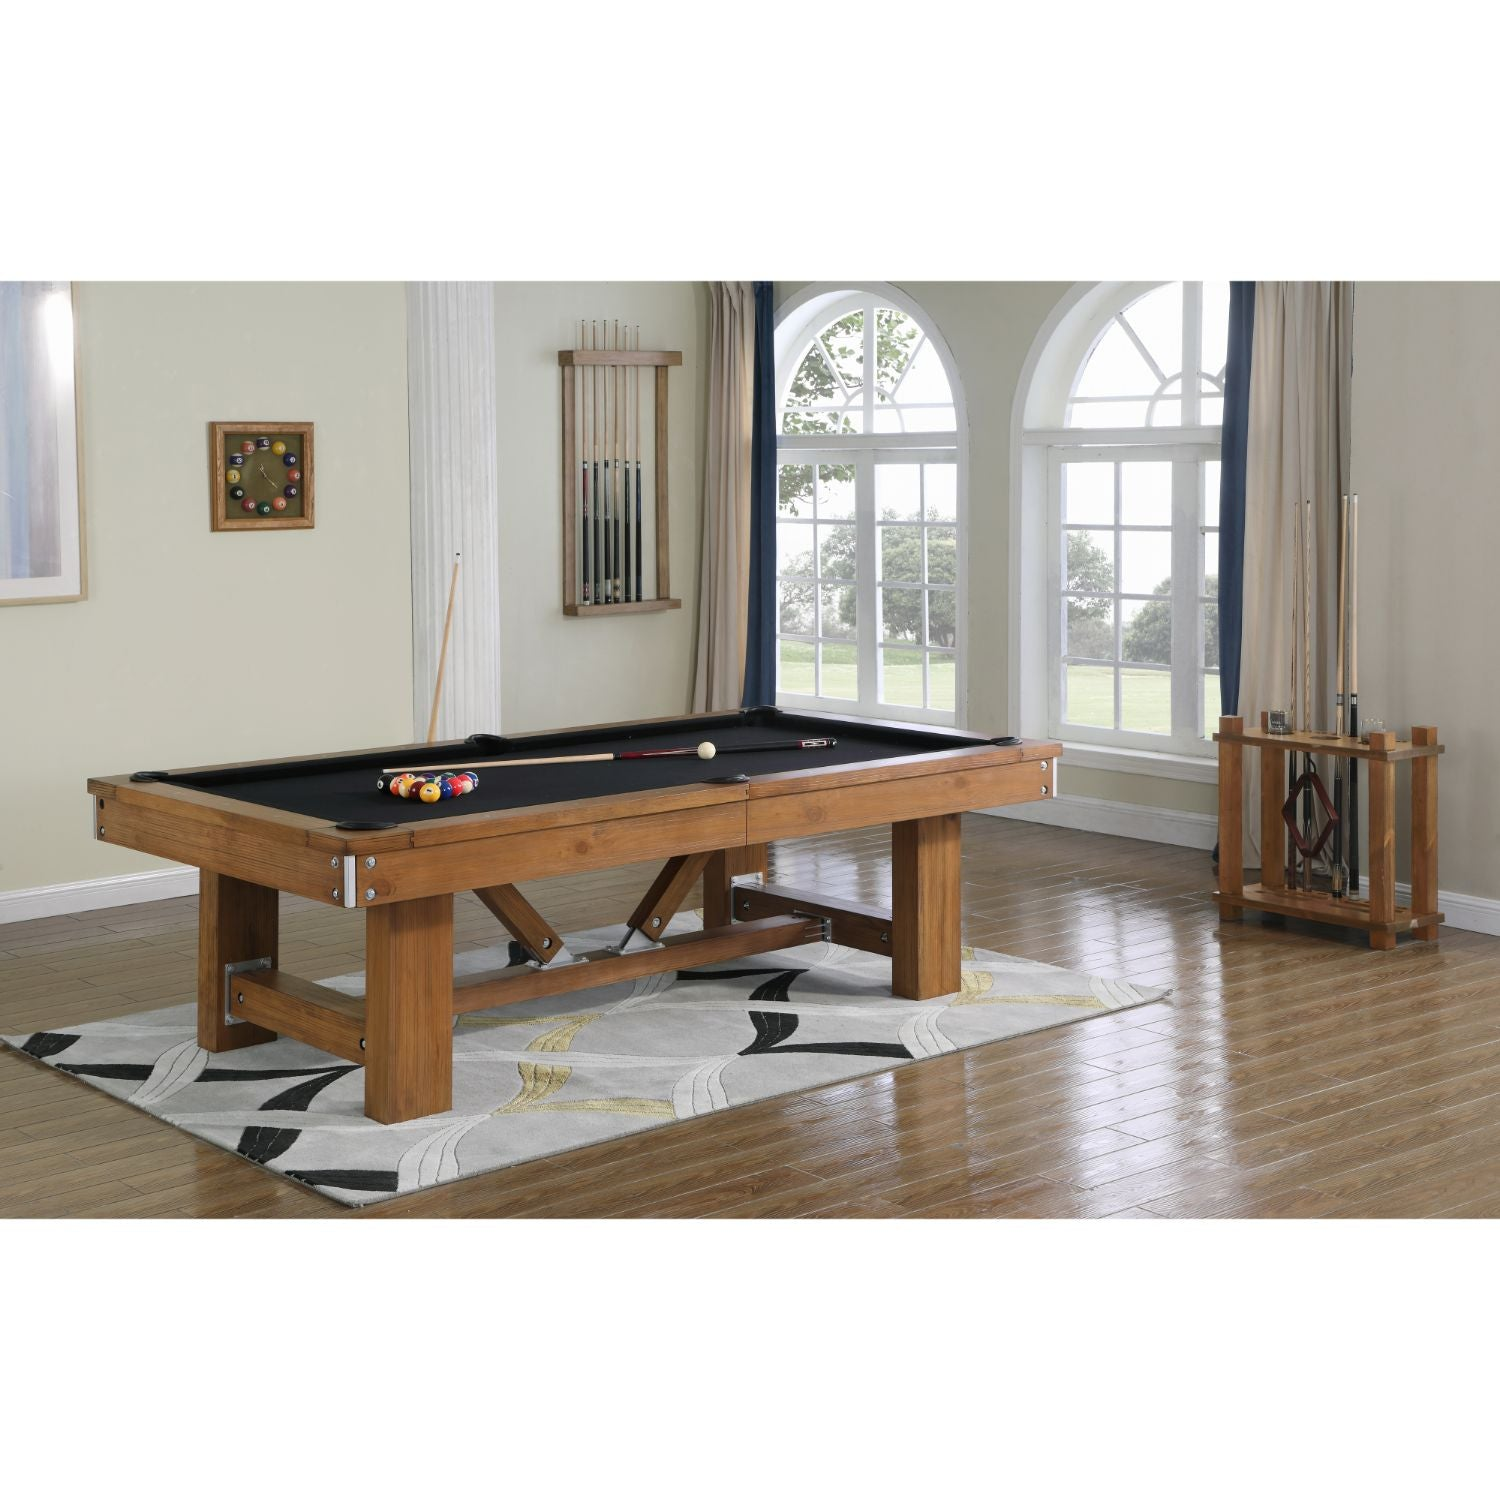 Playcraft Willow Bend Slate Pool Table with Optional Dining Top & Bench - Gaming Blaze